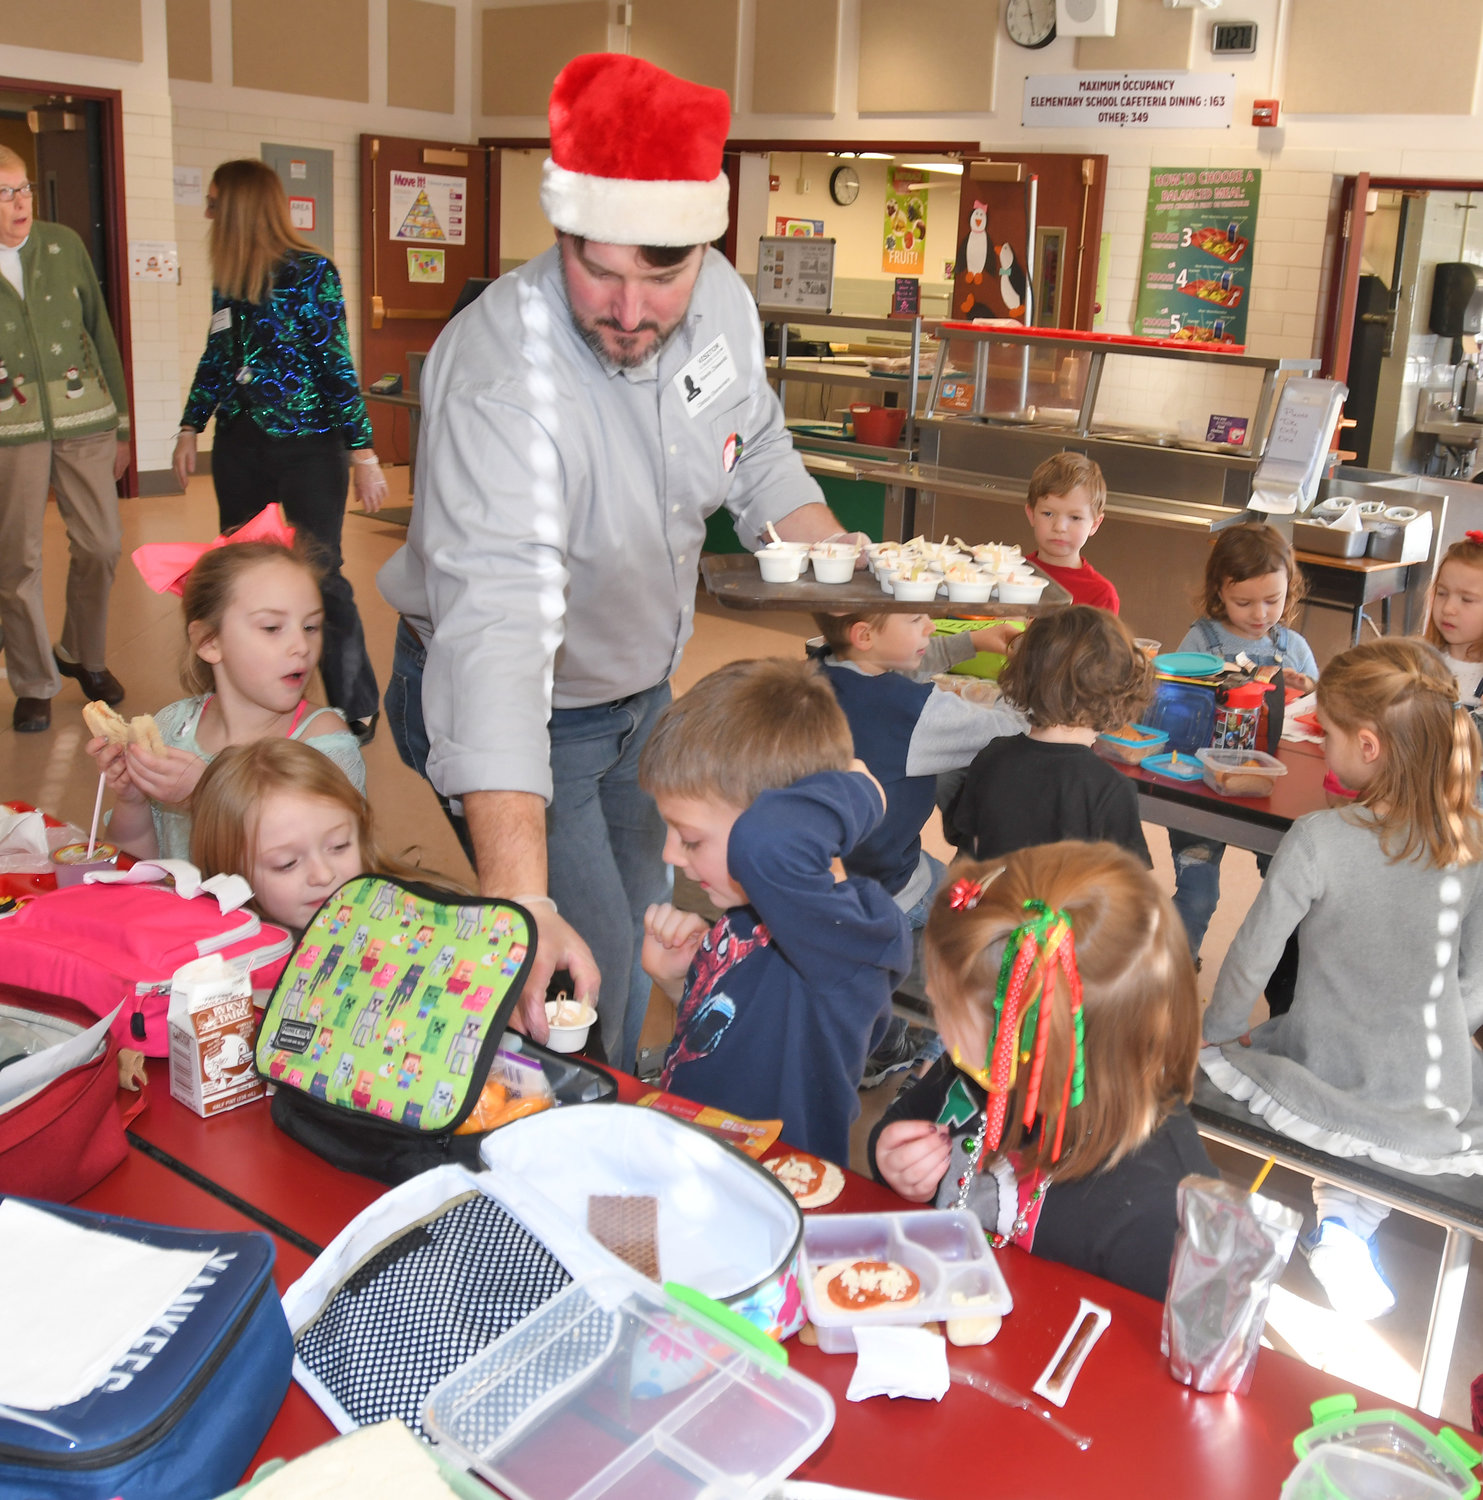 SOMETHING NEW — Clinton parent volunteer Kevin Ziesenitz hands out samples of the Asian Cabbage Slaw offered to elementary children during their lunch time at Clinton Elementary School on Dec. 18.